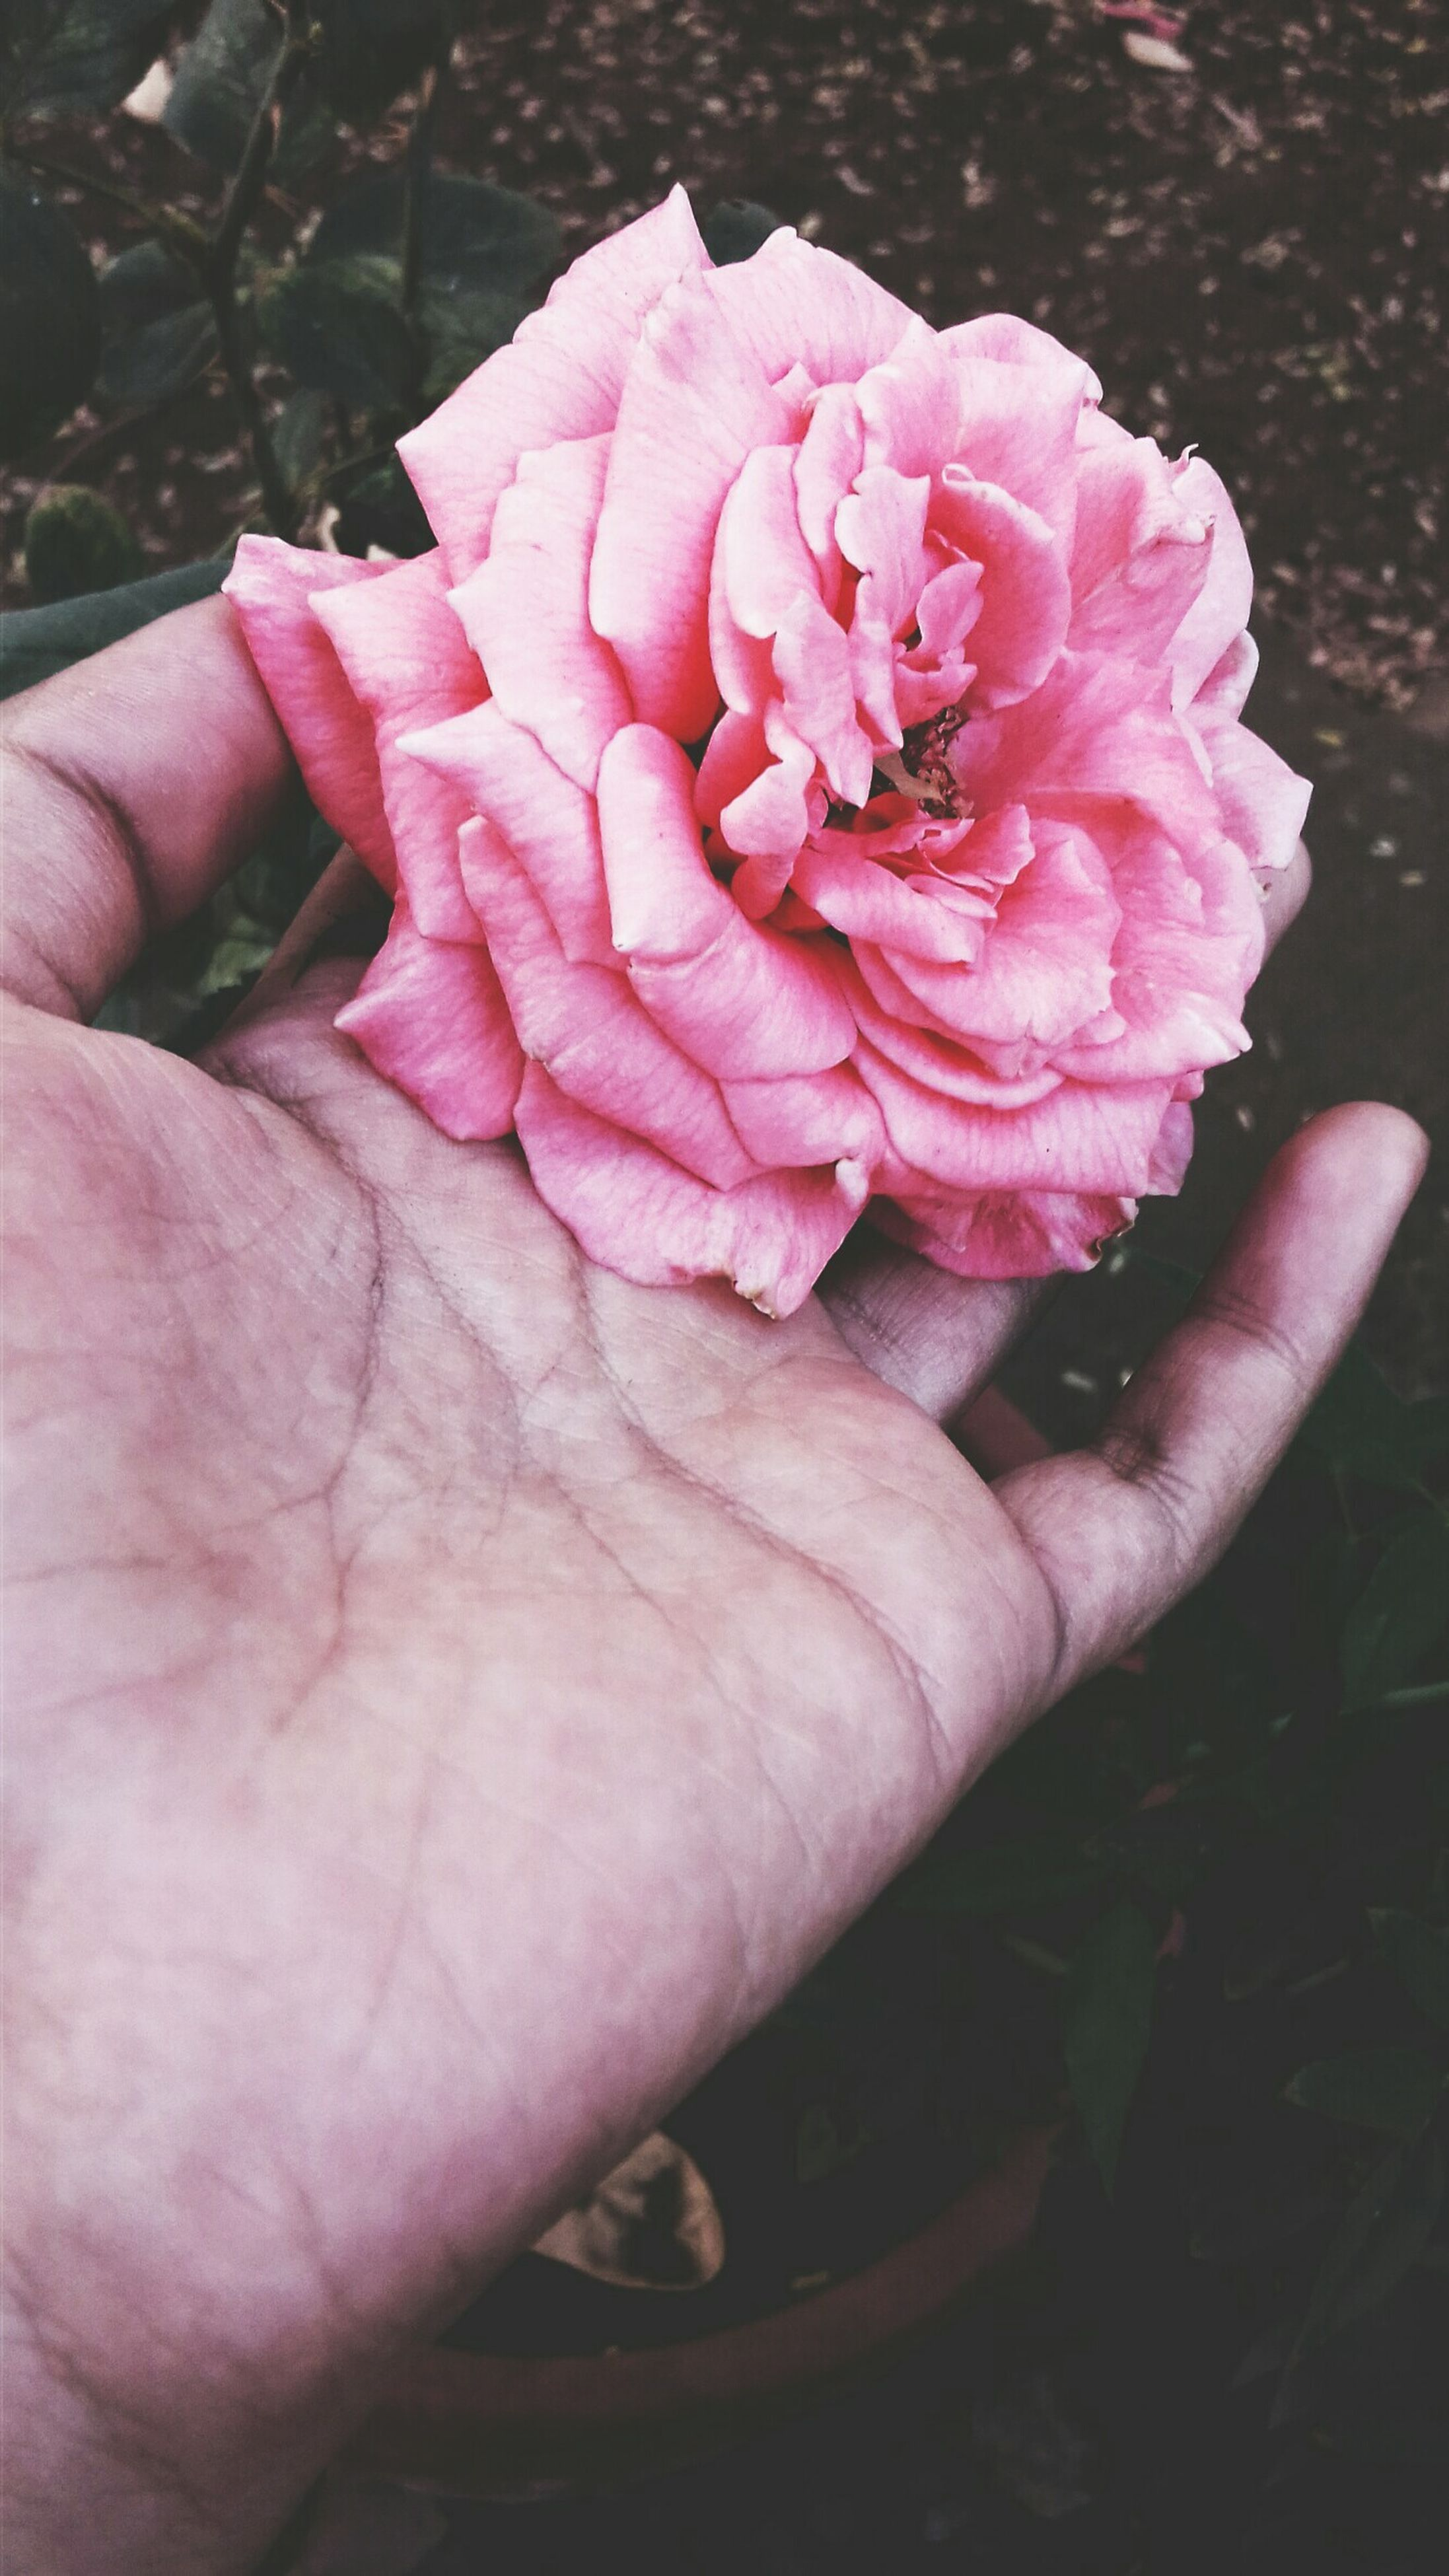 person, flower, part of, petal, holding, fragility, freshness, cropped, flower head, pink color, human finger, close-up, unrecognizable person, personal perspective, beauty in nature, focus on foreground, plant